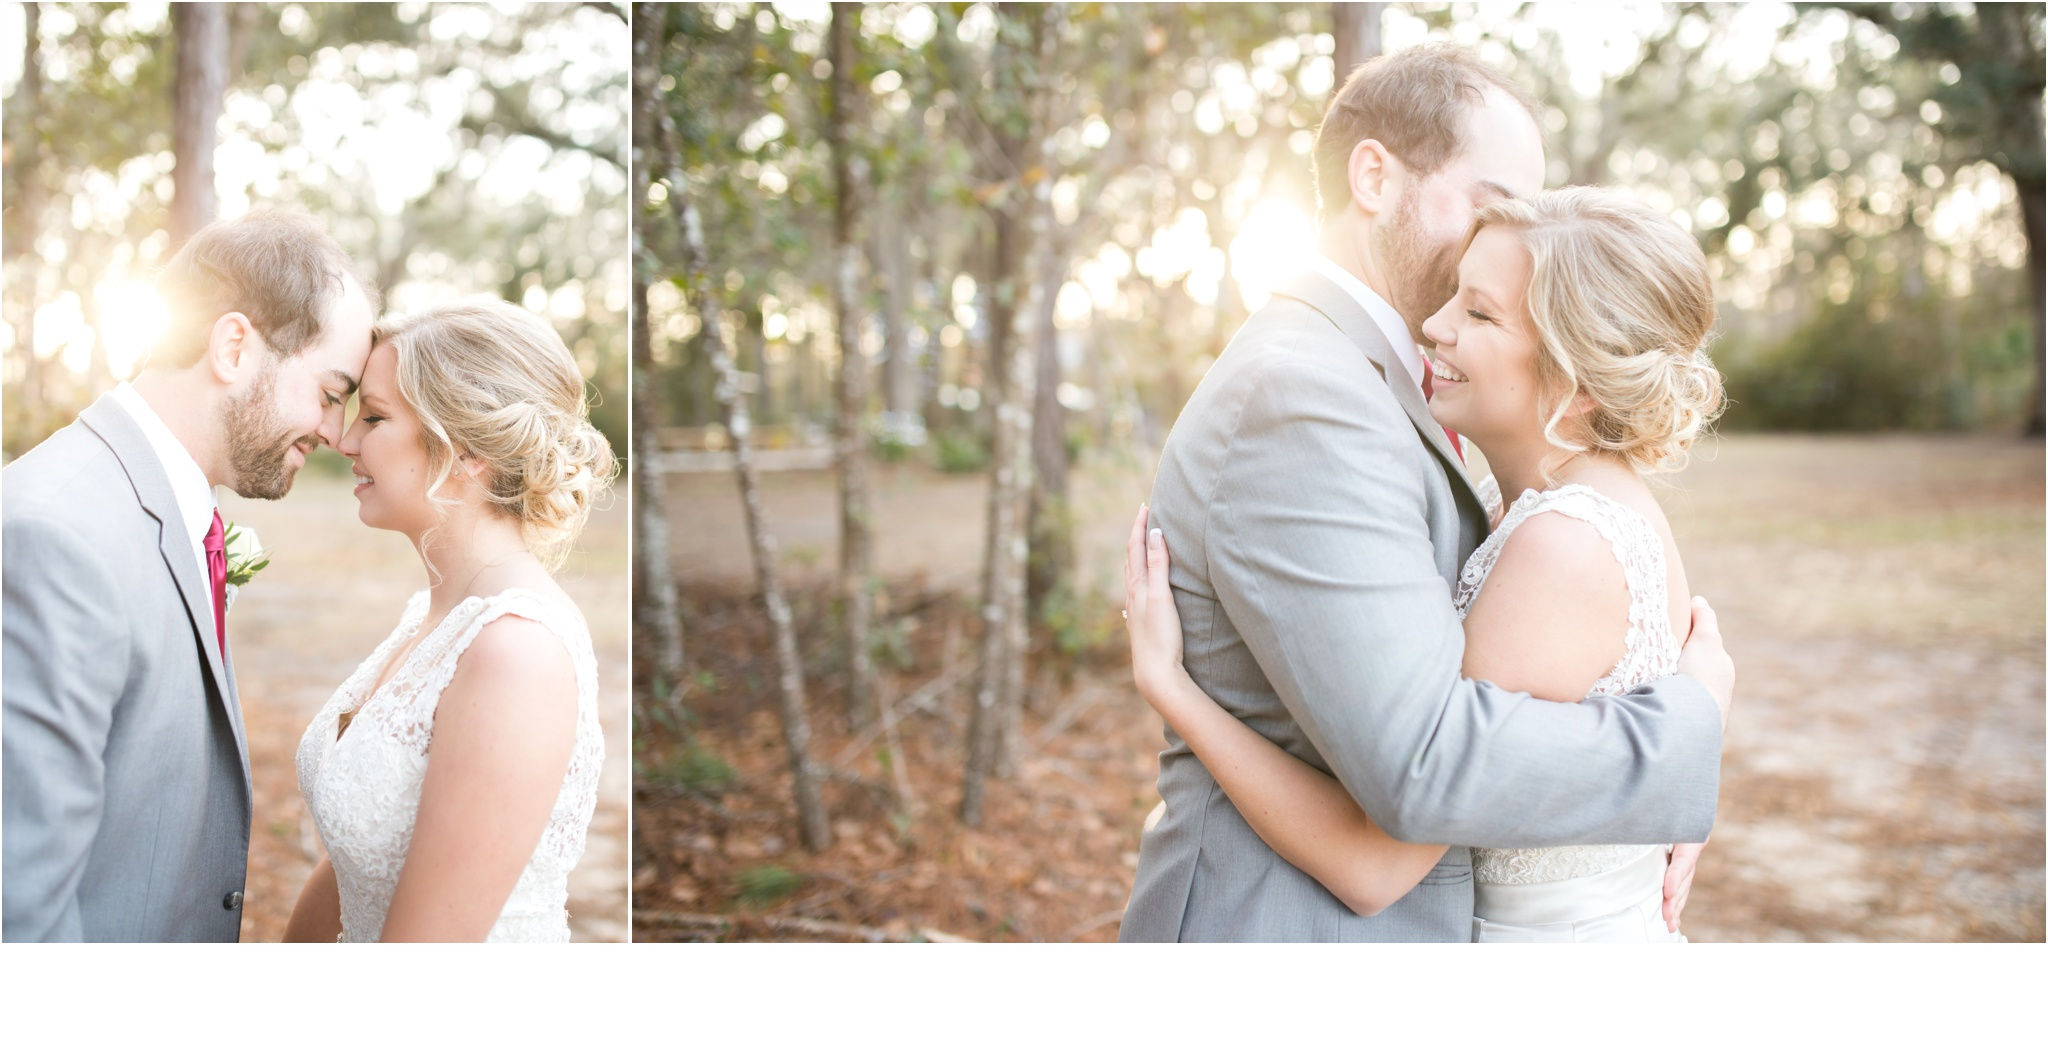 Rainey_Gregg_Photography_St._Simons_Island_Georgia_California_Wedding_Portrait_Photography_0508.jpg